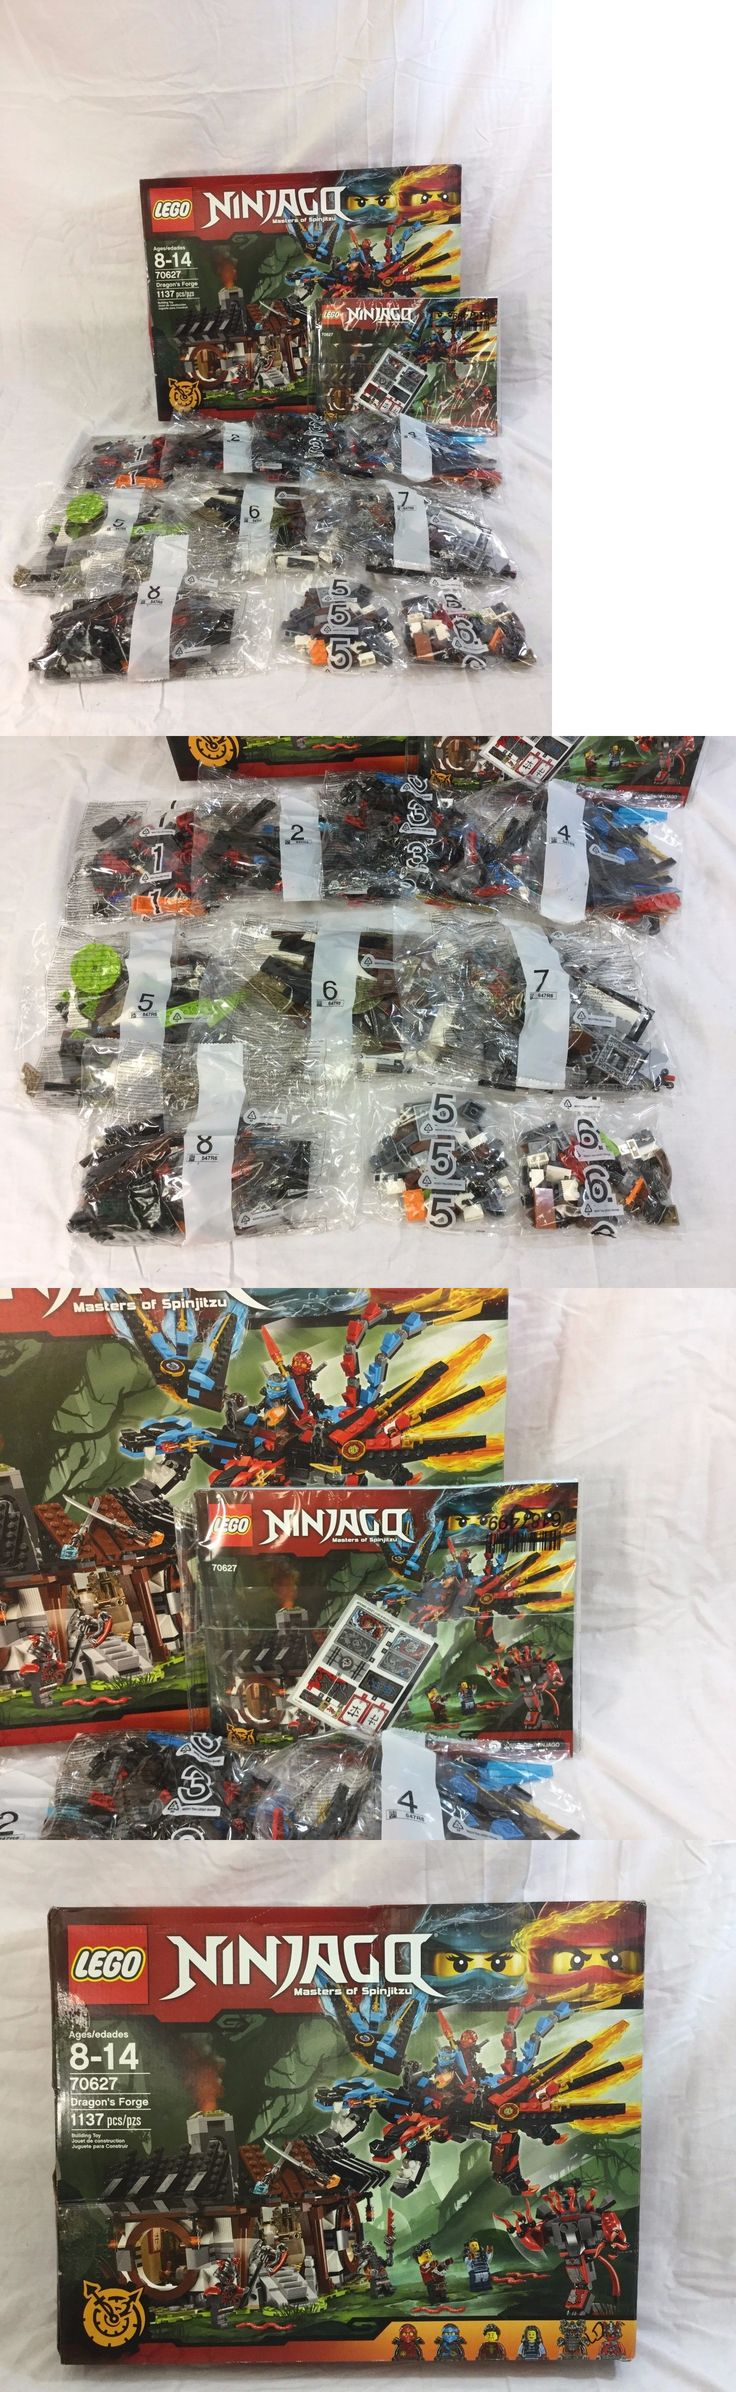 Bricks and Building Pieces 183448: Lego Ninjago Dragon S Forge Building Set - 1137 Pieces (70627) *New Other* -> BUY IT NOW ONLY: $64.99 on eBay!